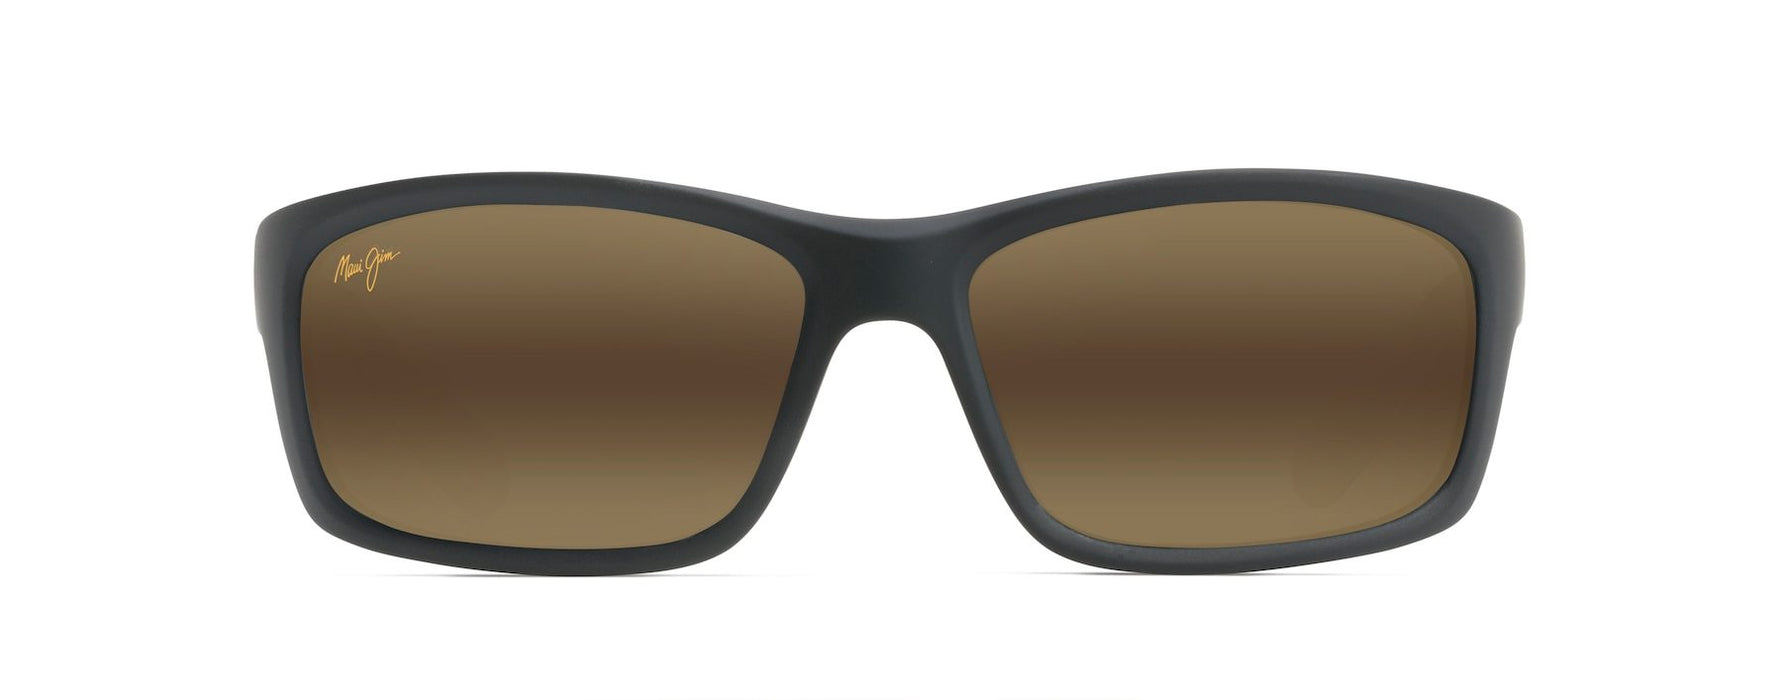 MyMaui Kanaio Coast MM766-011 Sunglasses